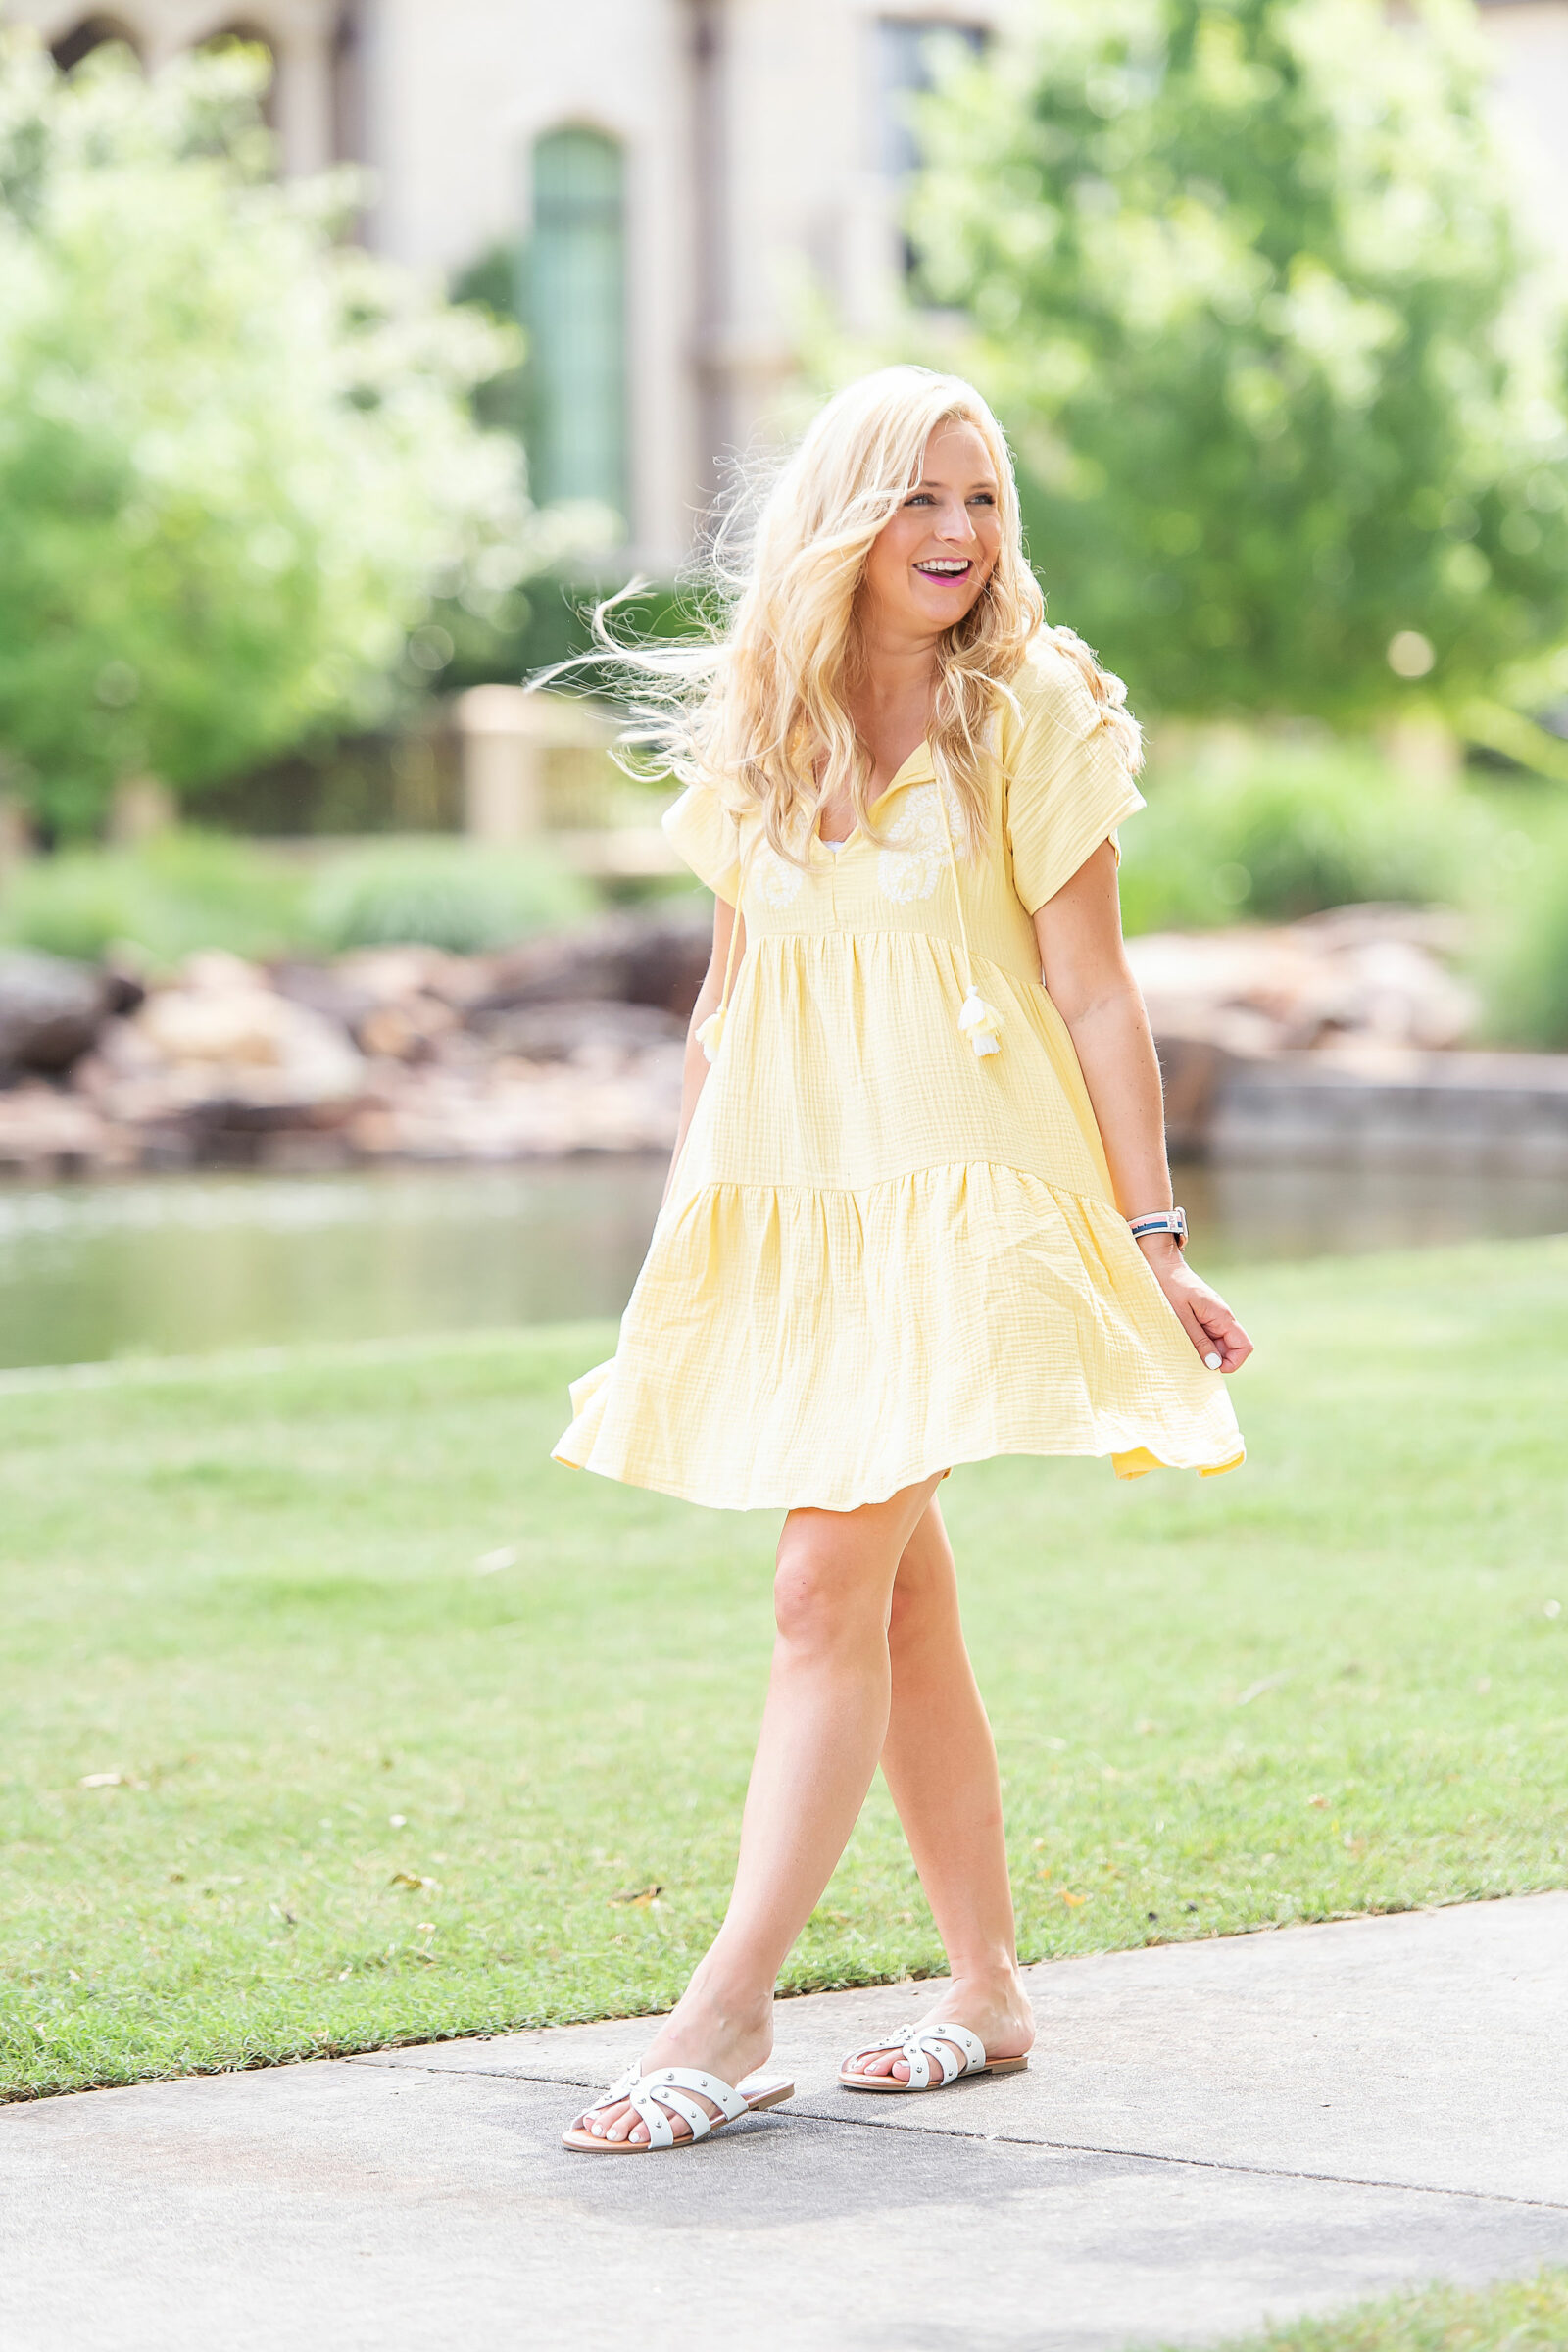 The Prettiest Embroidered Dresses for Summer  . Prettiest Embroidered Dresses for Summer   Embroidered Dresses by popular Houston fashion blog, The House of Fancy: image of a woman walking outside on a sidewalk and wearing a yellow embroidered dress with white strap slide sandals.